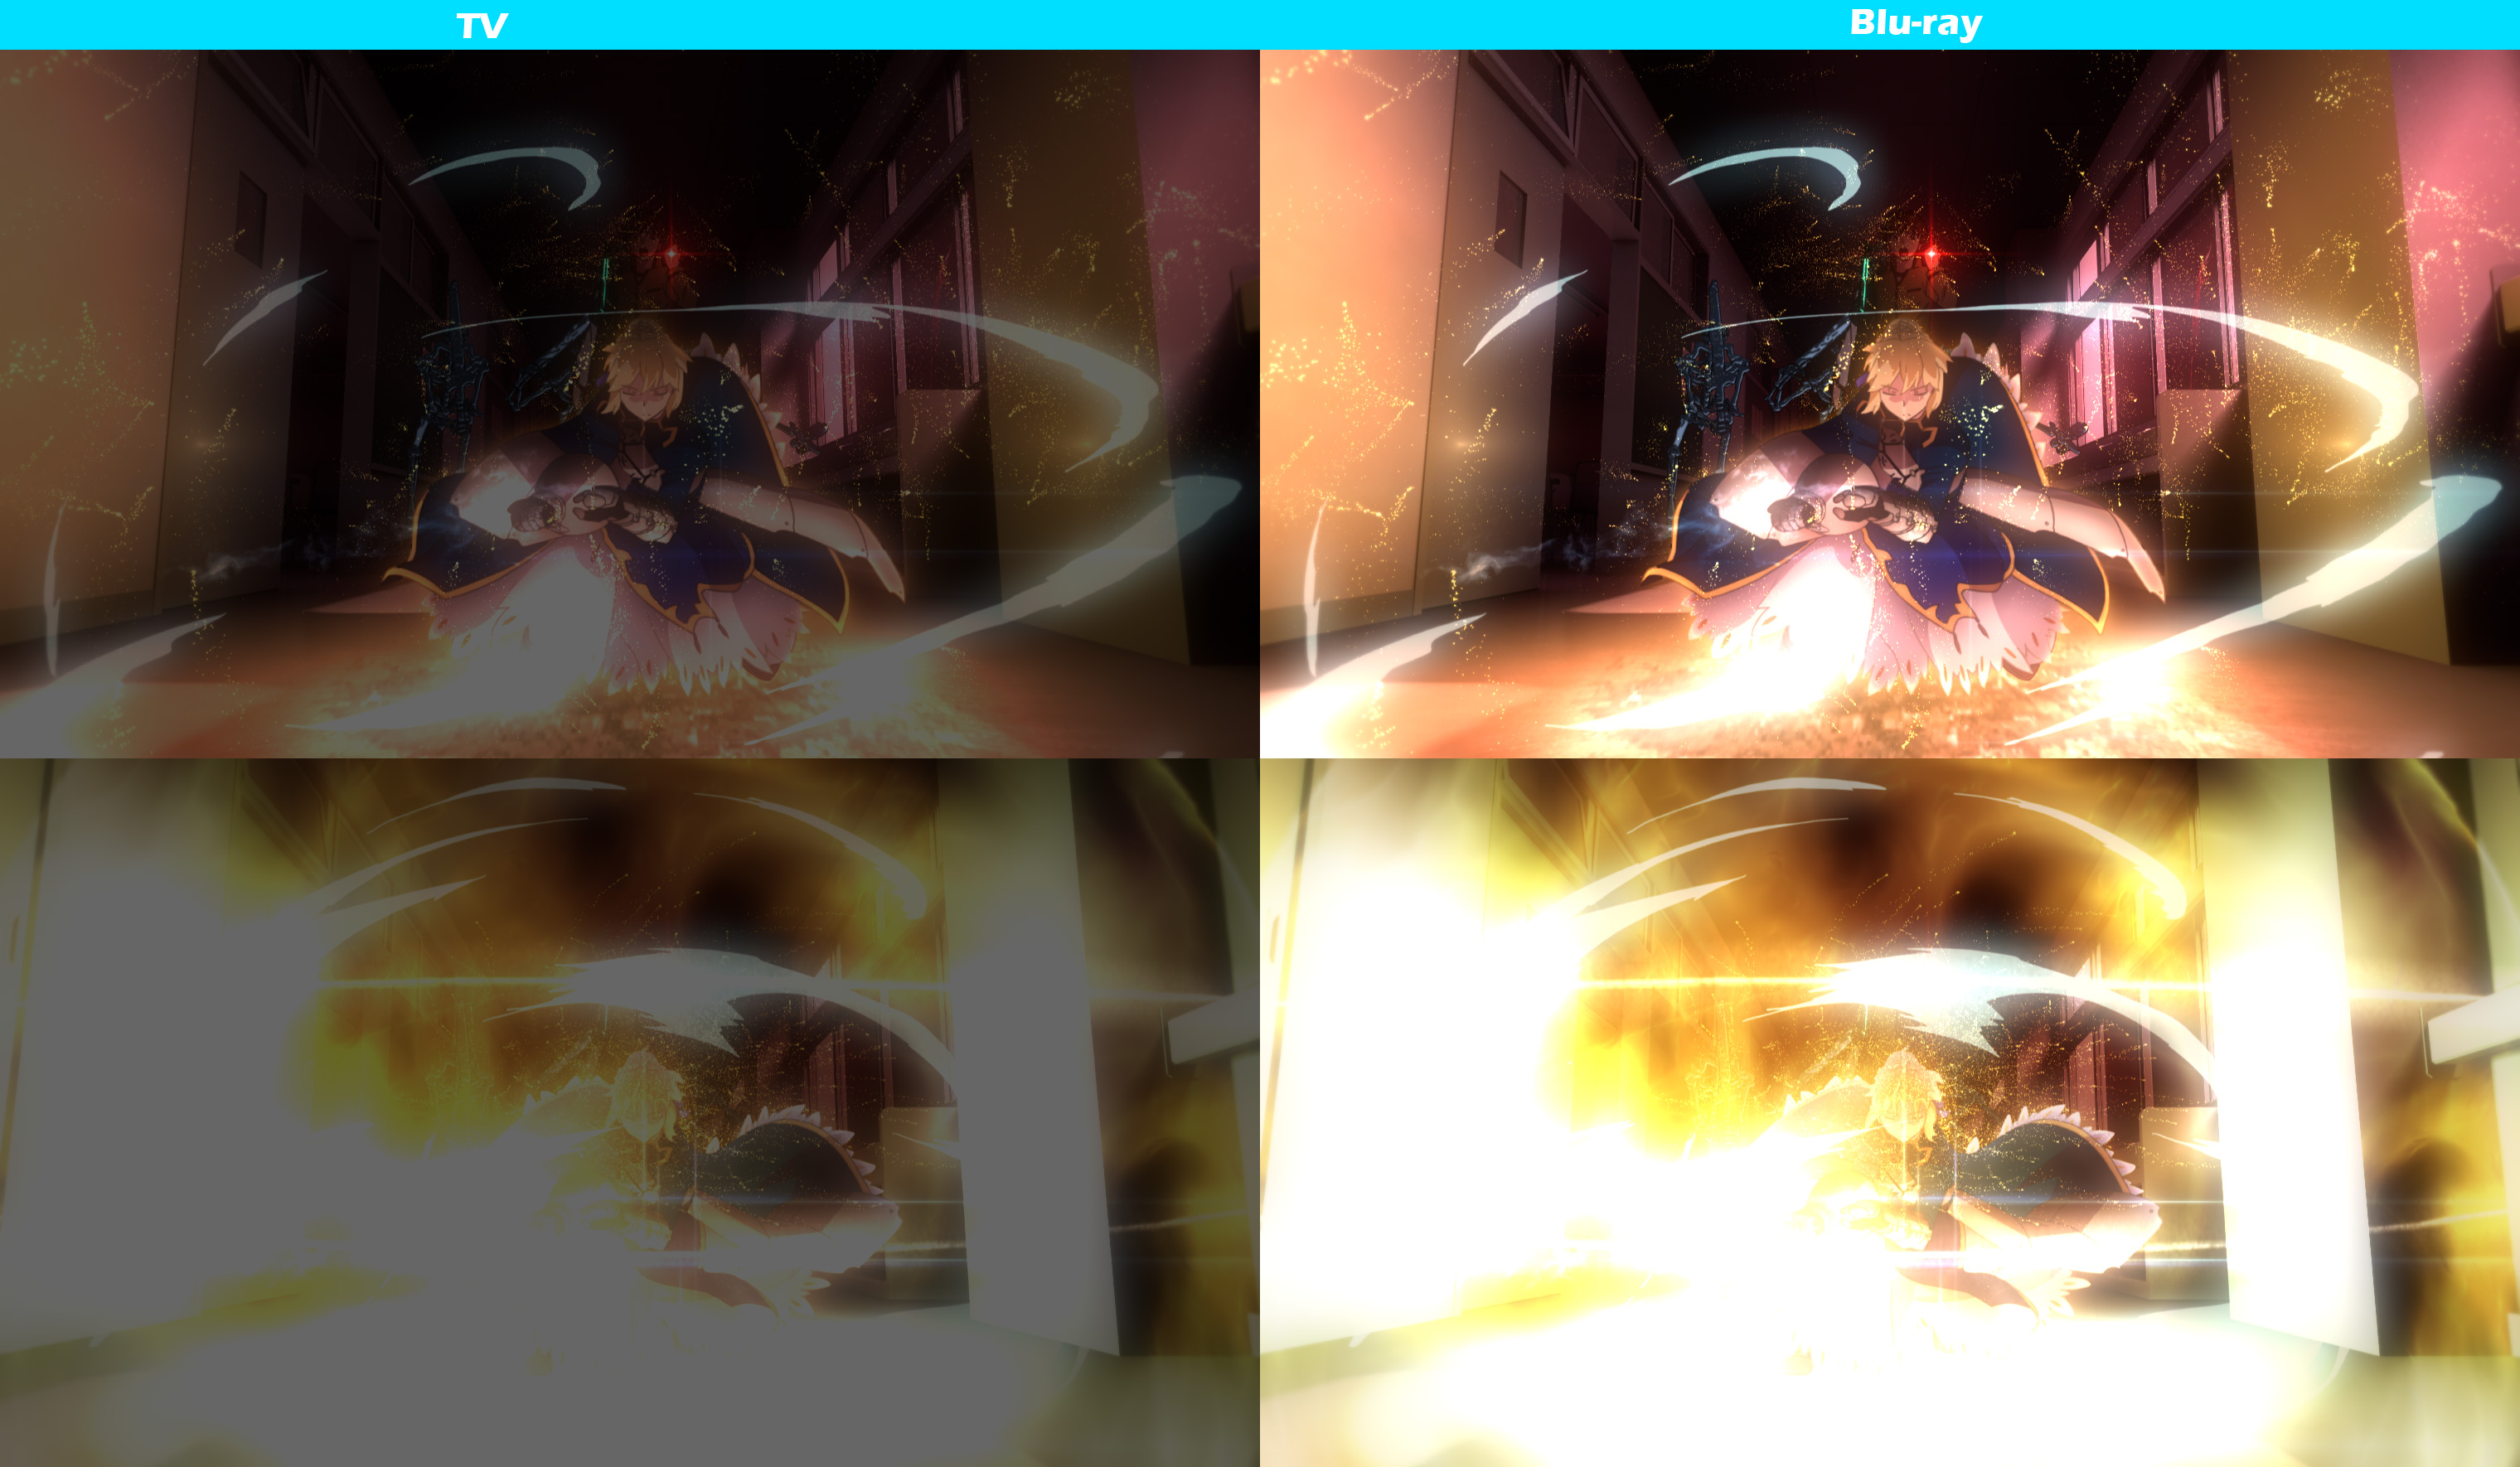 Fate-stay-night-Unlimited-Blade-Works_Haruhichan.com-TV-vs-Blu-ray-Preview-2